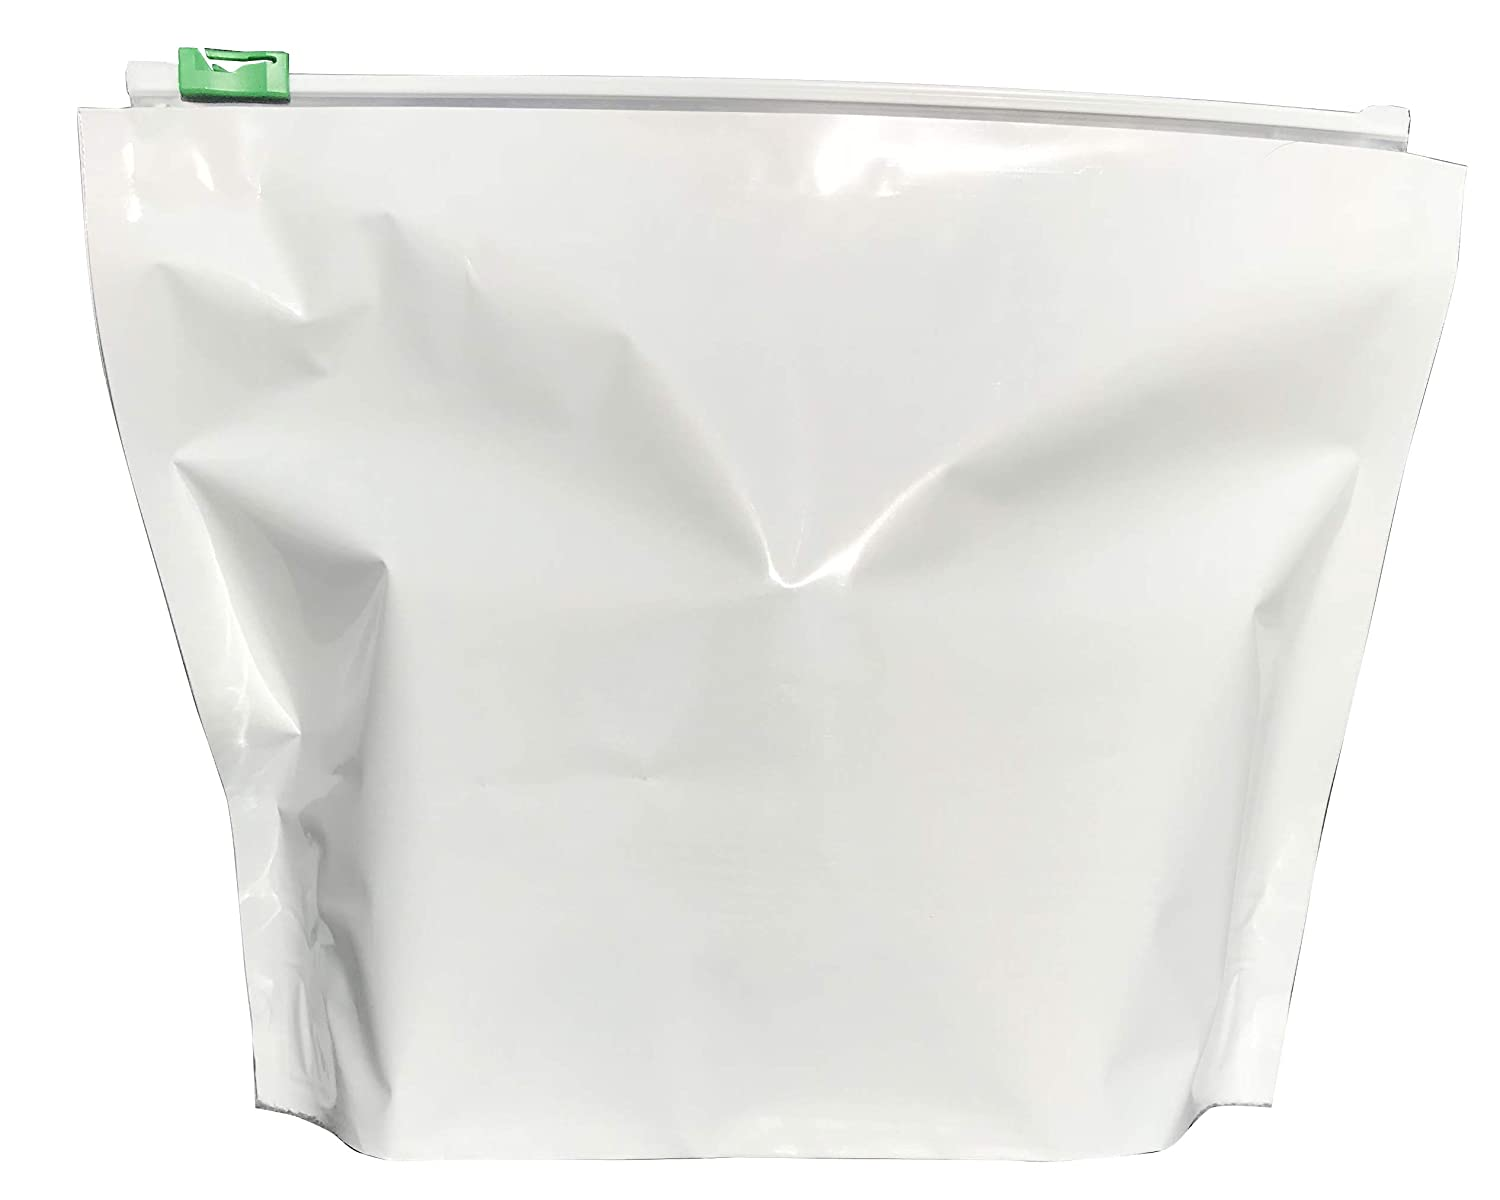 """HISIERRA Child Resistant Exit Bags - Weekender Size (12"""" x 9"""" x 4"""") Packed 420 Bags per case"""